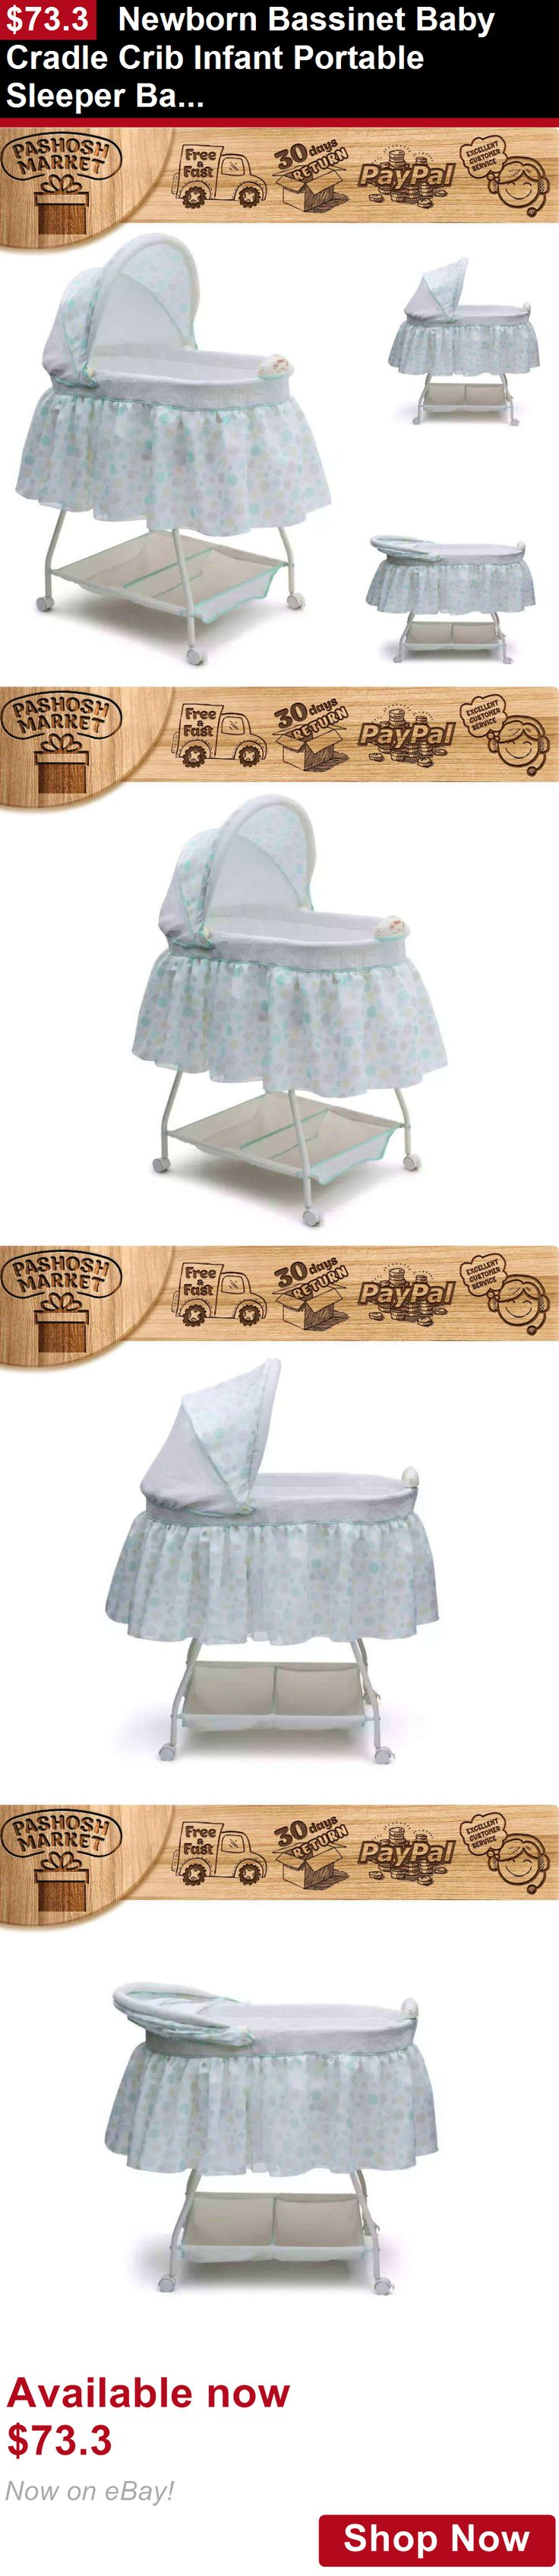 Baby bed vs bassinet - Bassinets And Cradles Newborn Bassinet Baby Cradle Crib Infant Portable Sleeper Baby Bed Dots